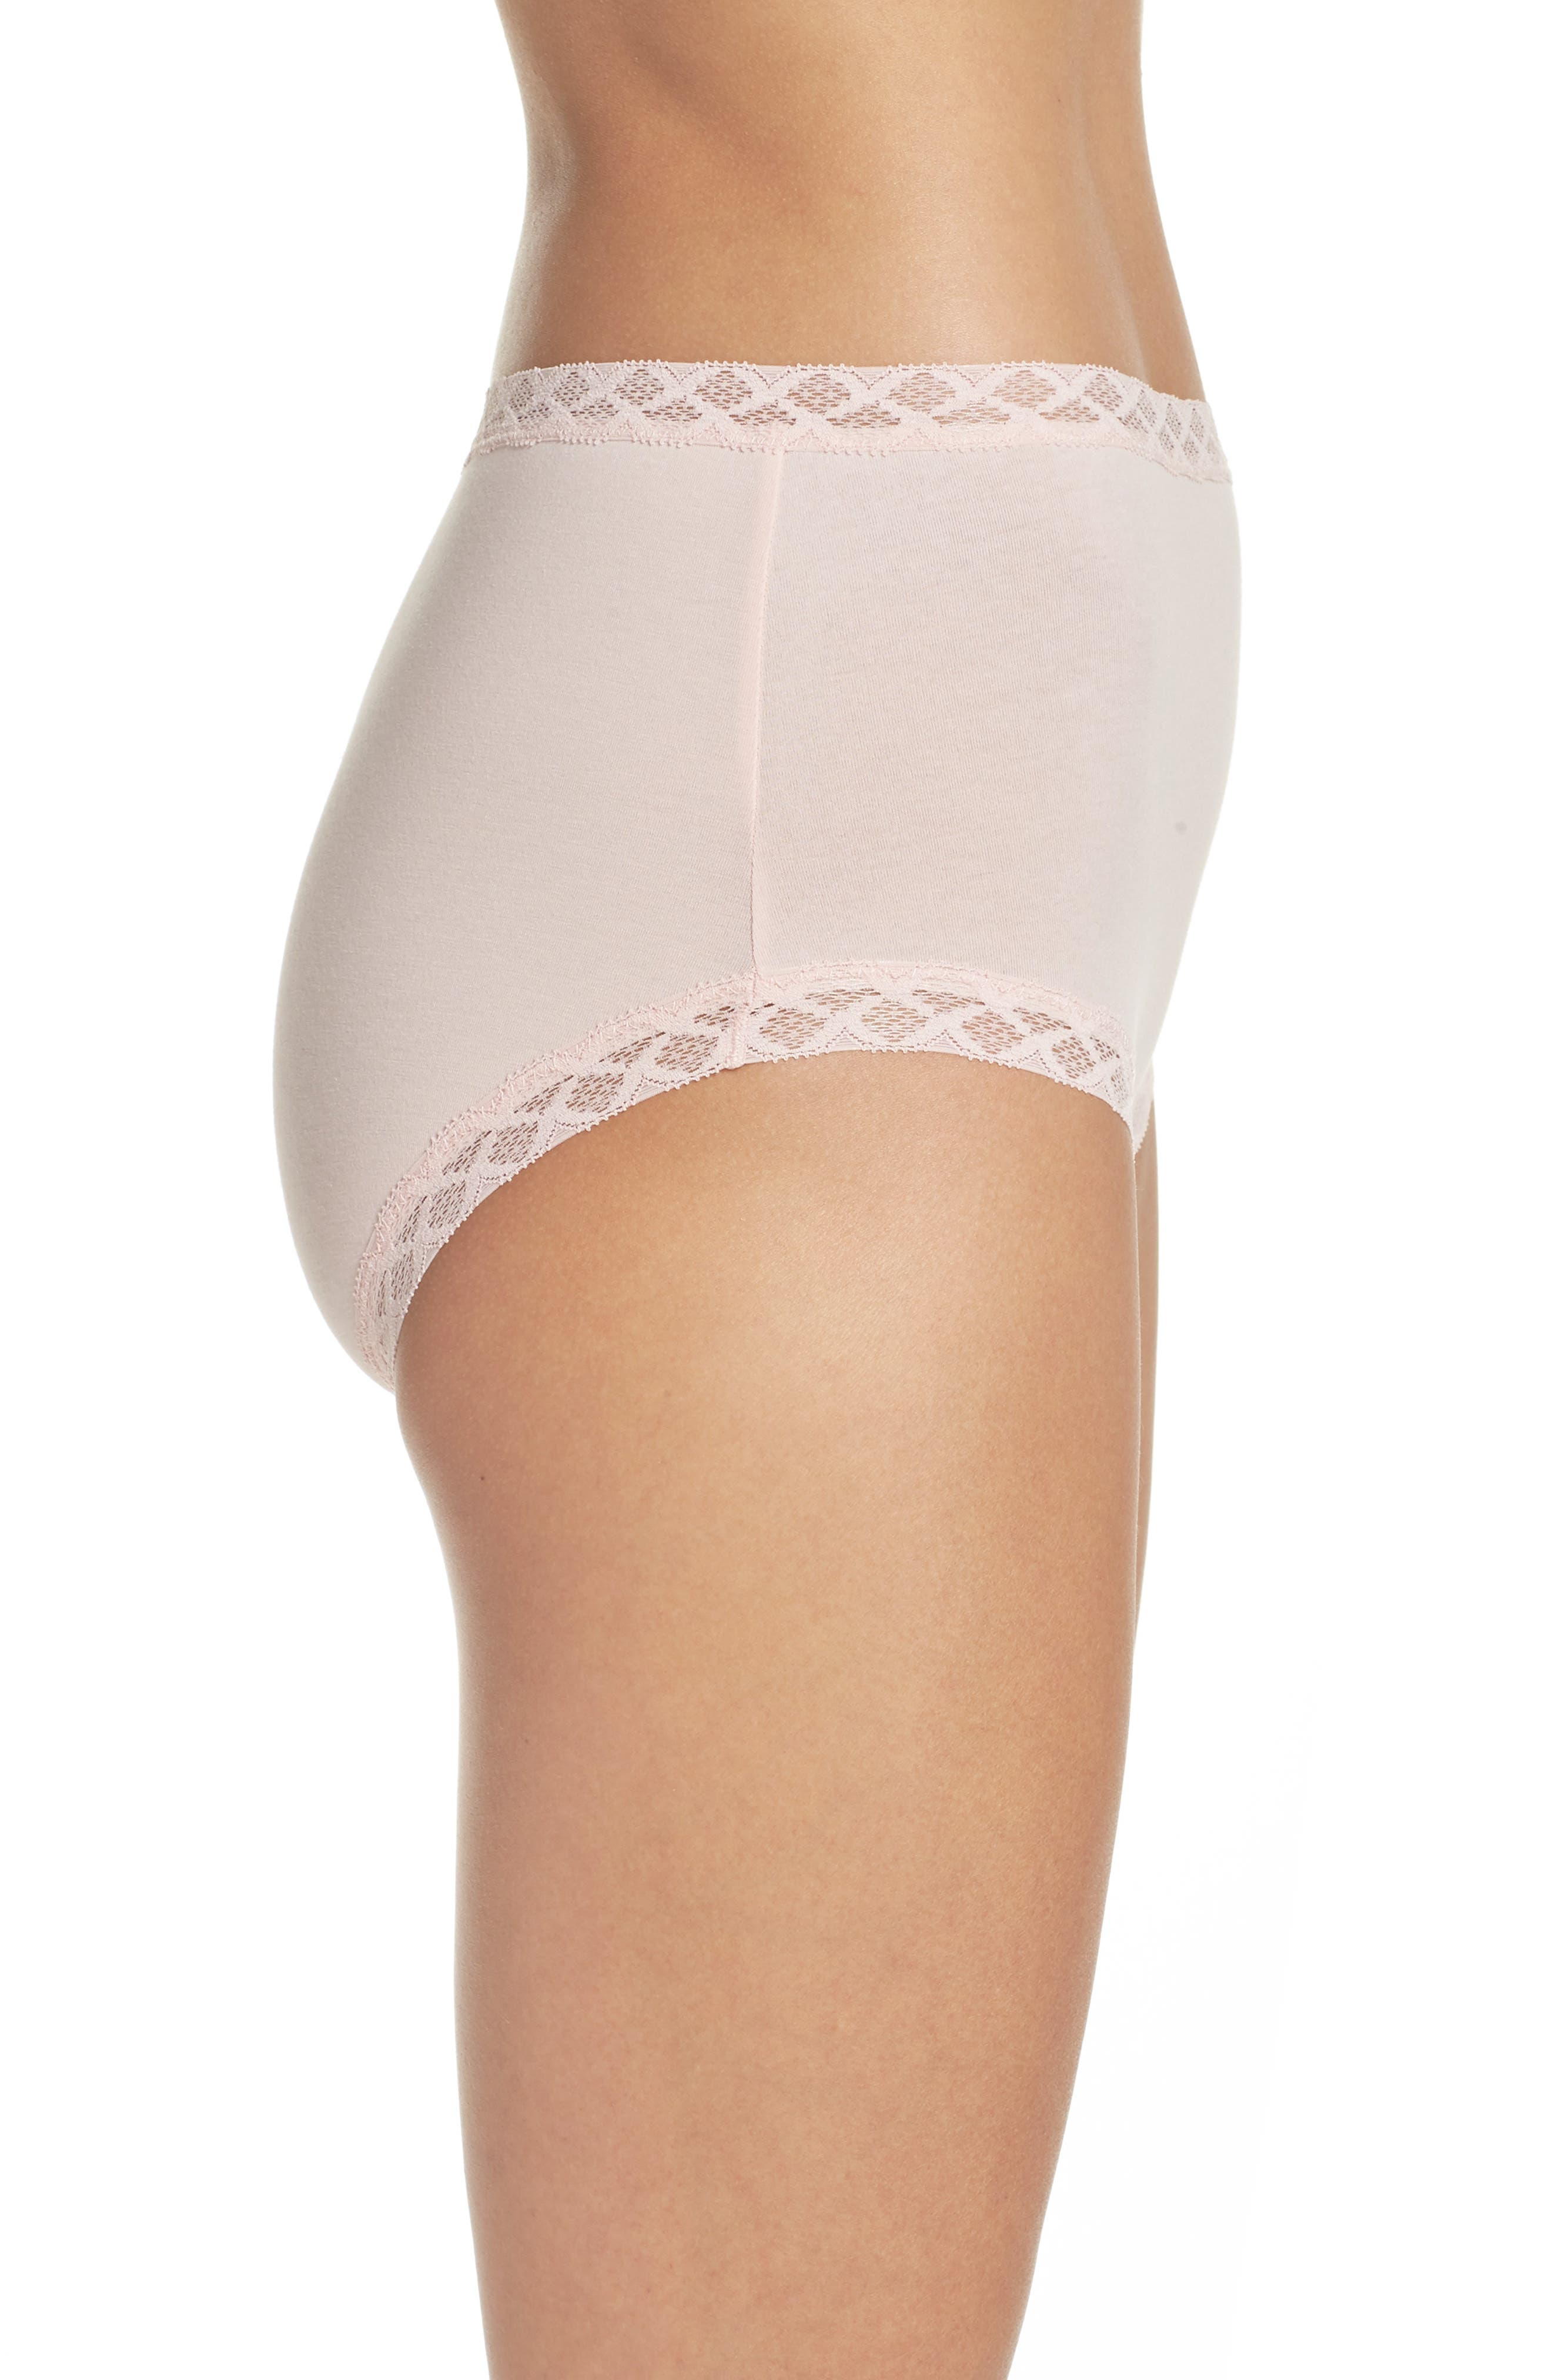 Bliss Cotton Full Brief,                             Alternate thumbnail 3, color,                             Blushing Pink